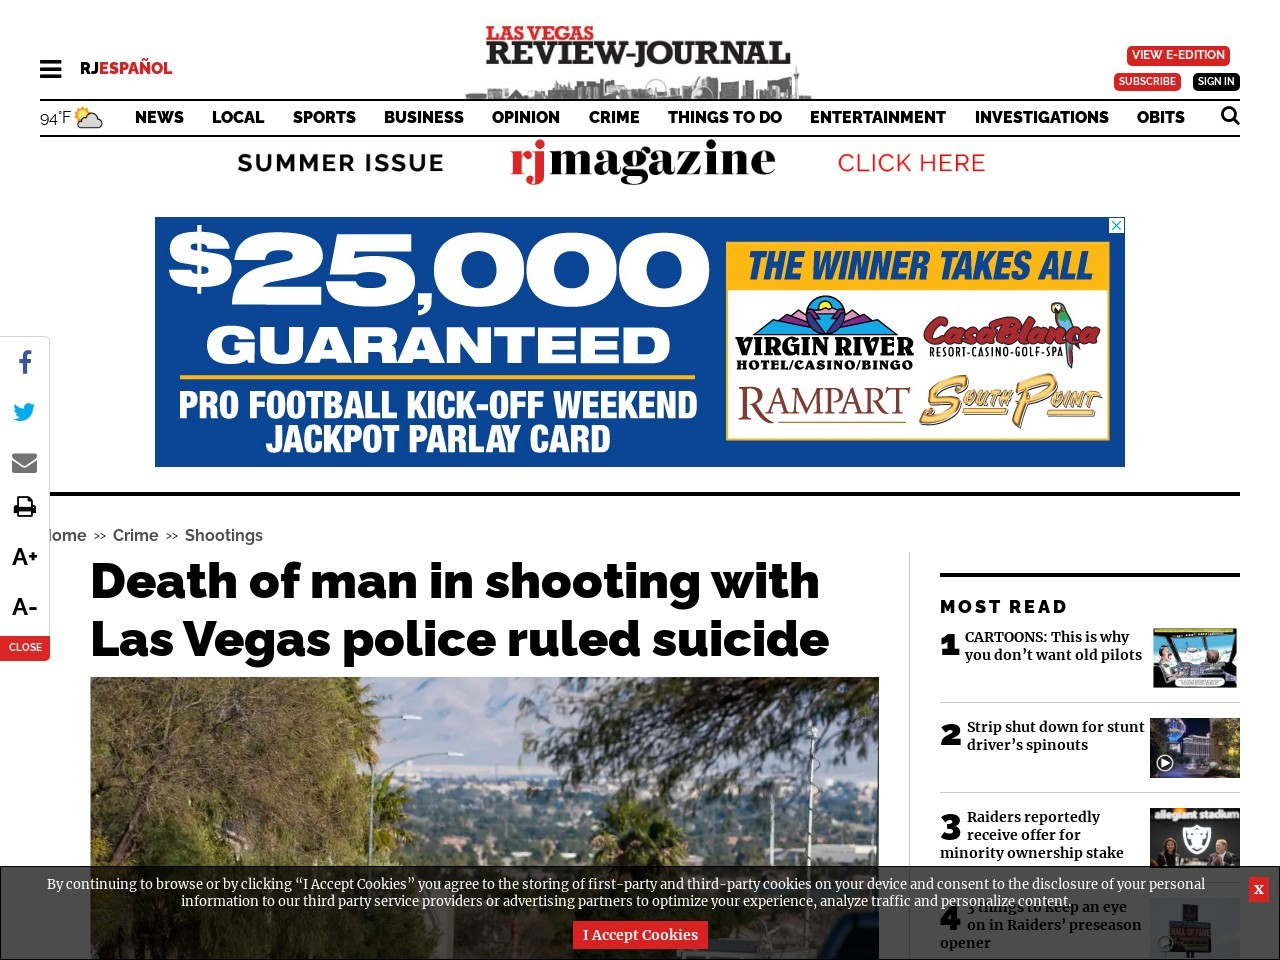 Death of man in shooting with Las Vegas police ruled suicide